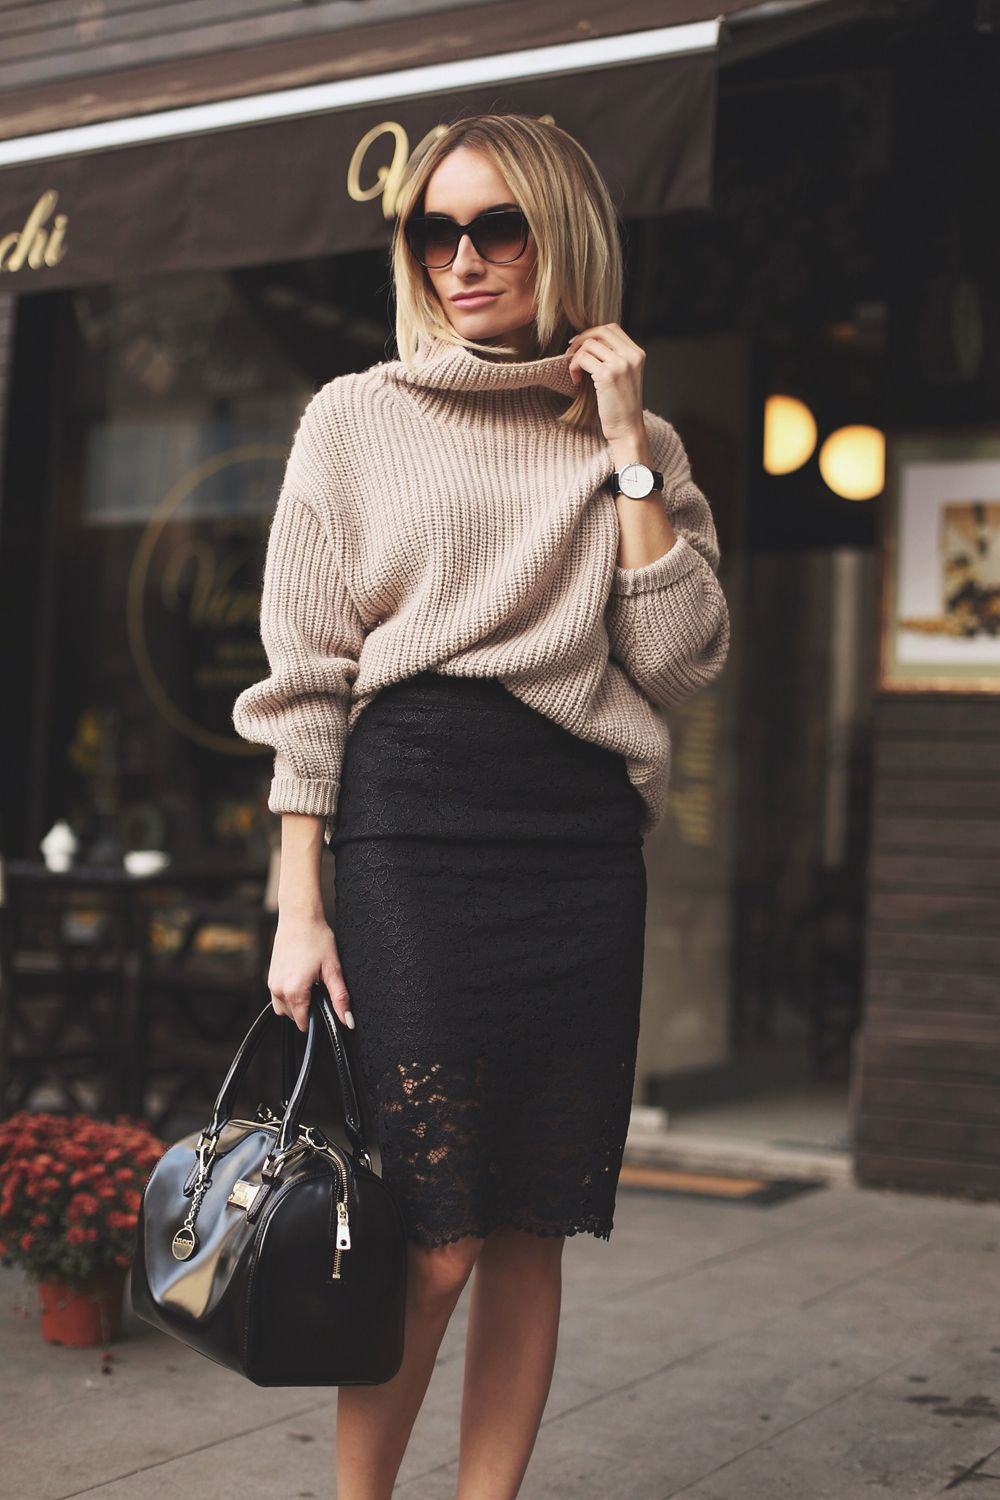 2015 Guess by Marciano skirt, knitwear available in Afi Cotroceni/ / DKNY bag / Daniel Wellington watch